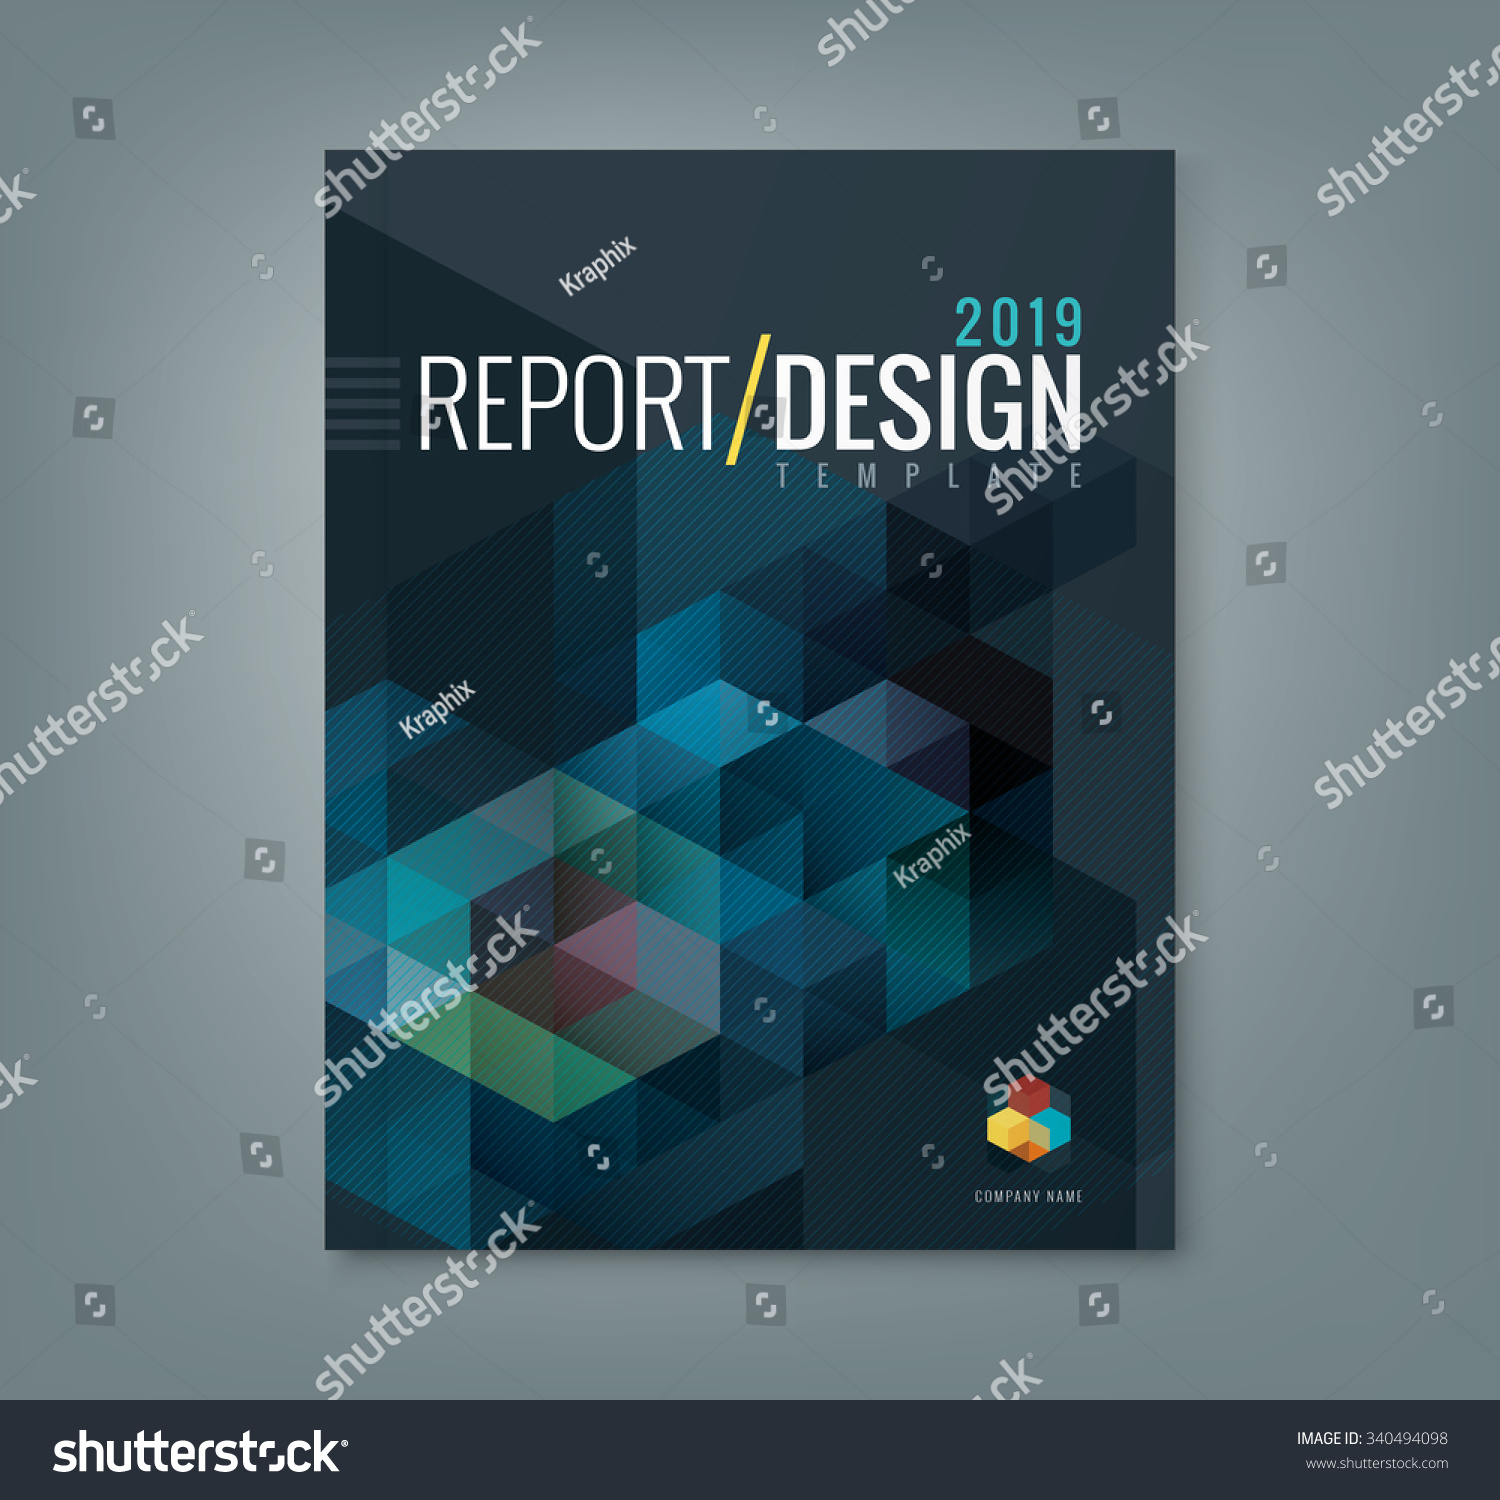 powerpoint it templates images - templates example free download, Modern powerpoint